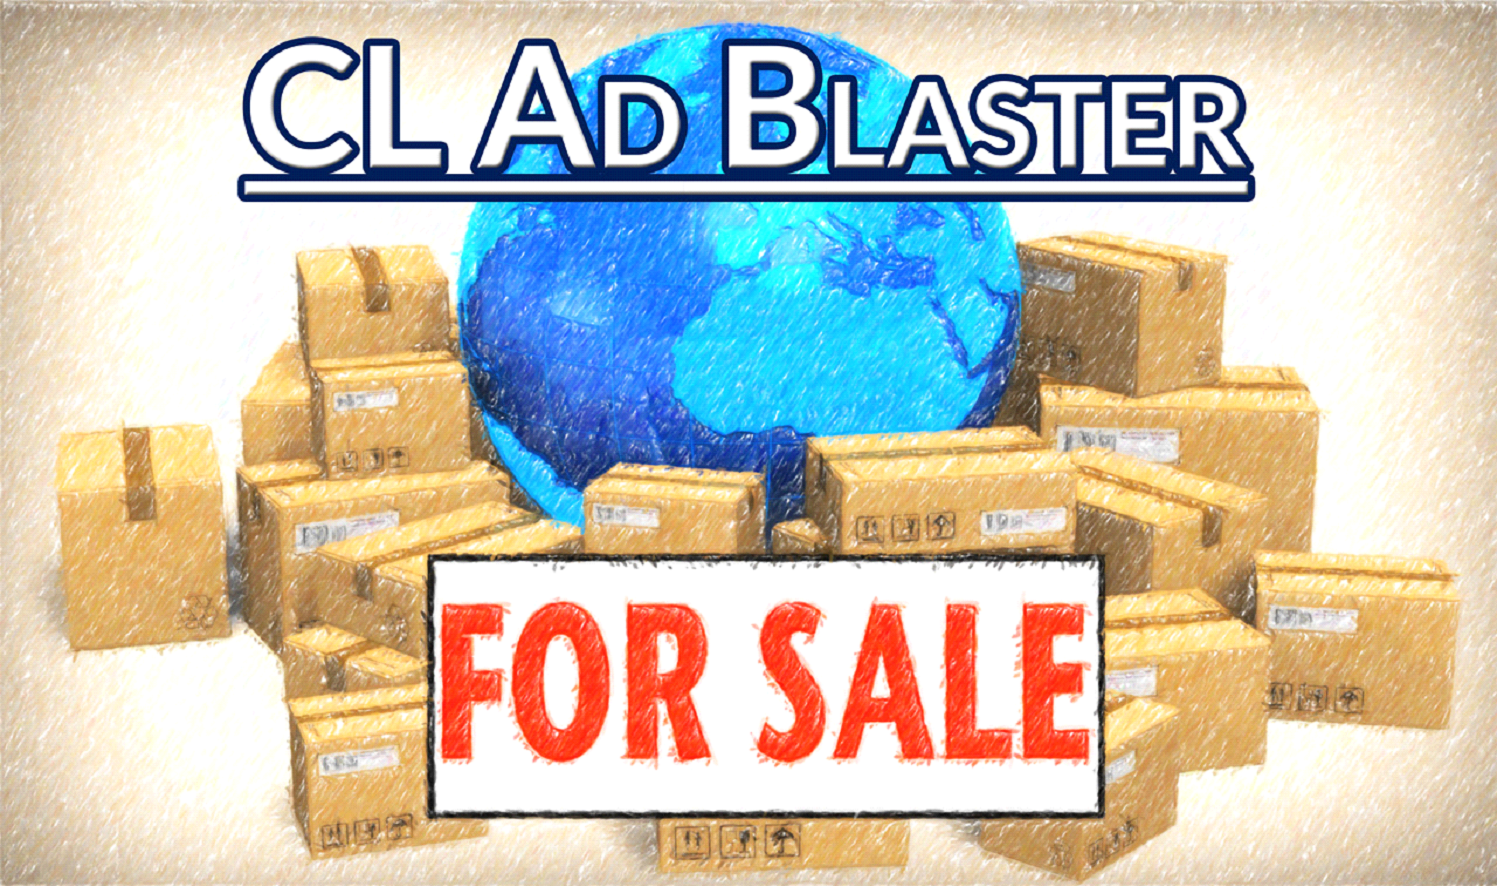 Will help you to protect your Craigslist ads from Flagger